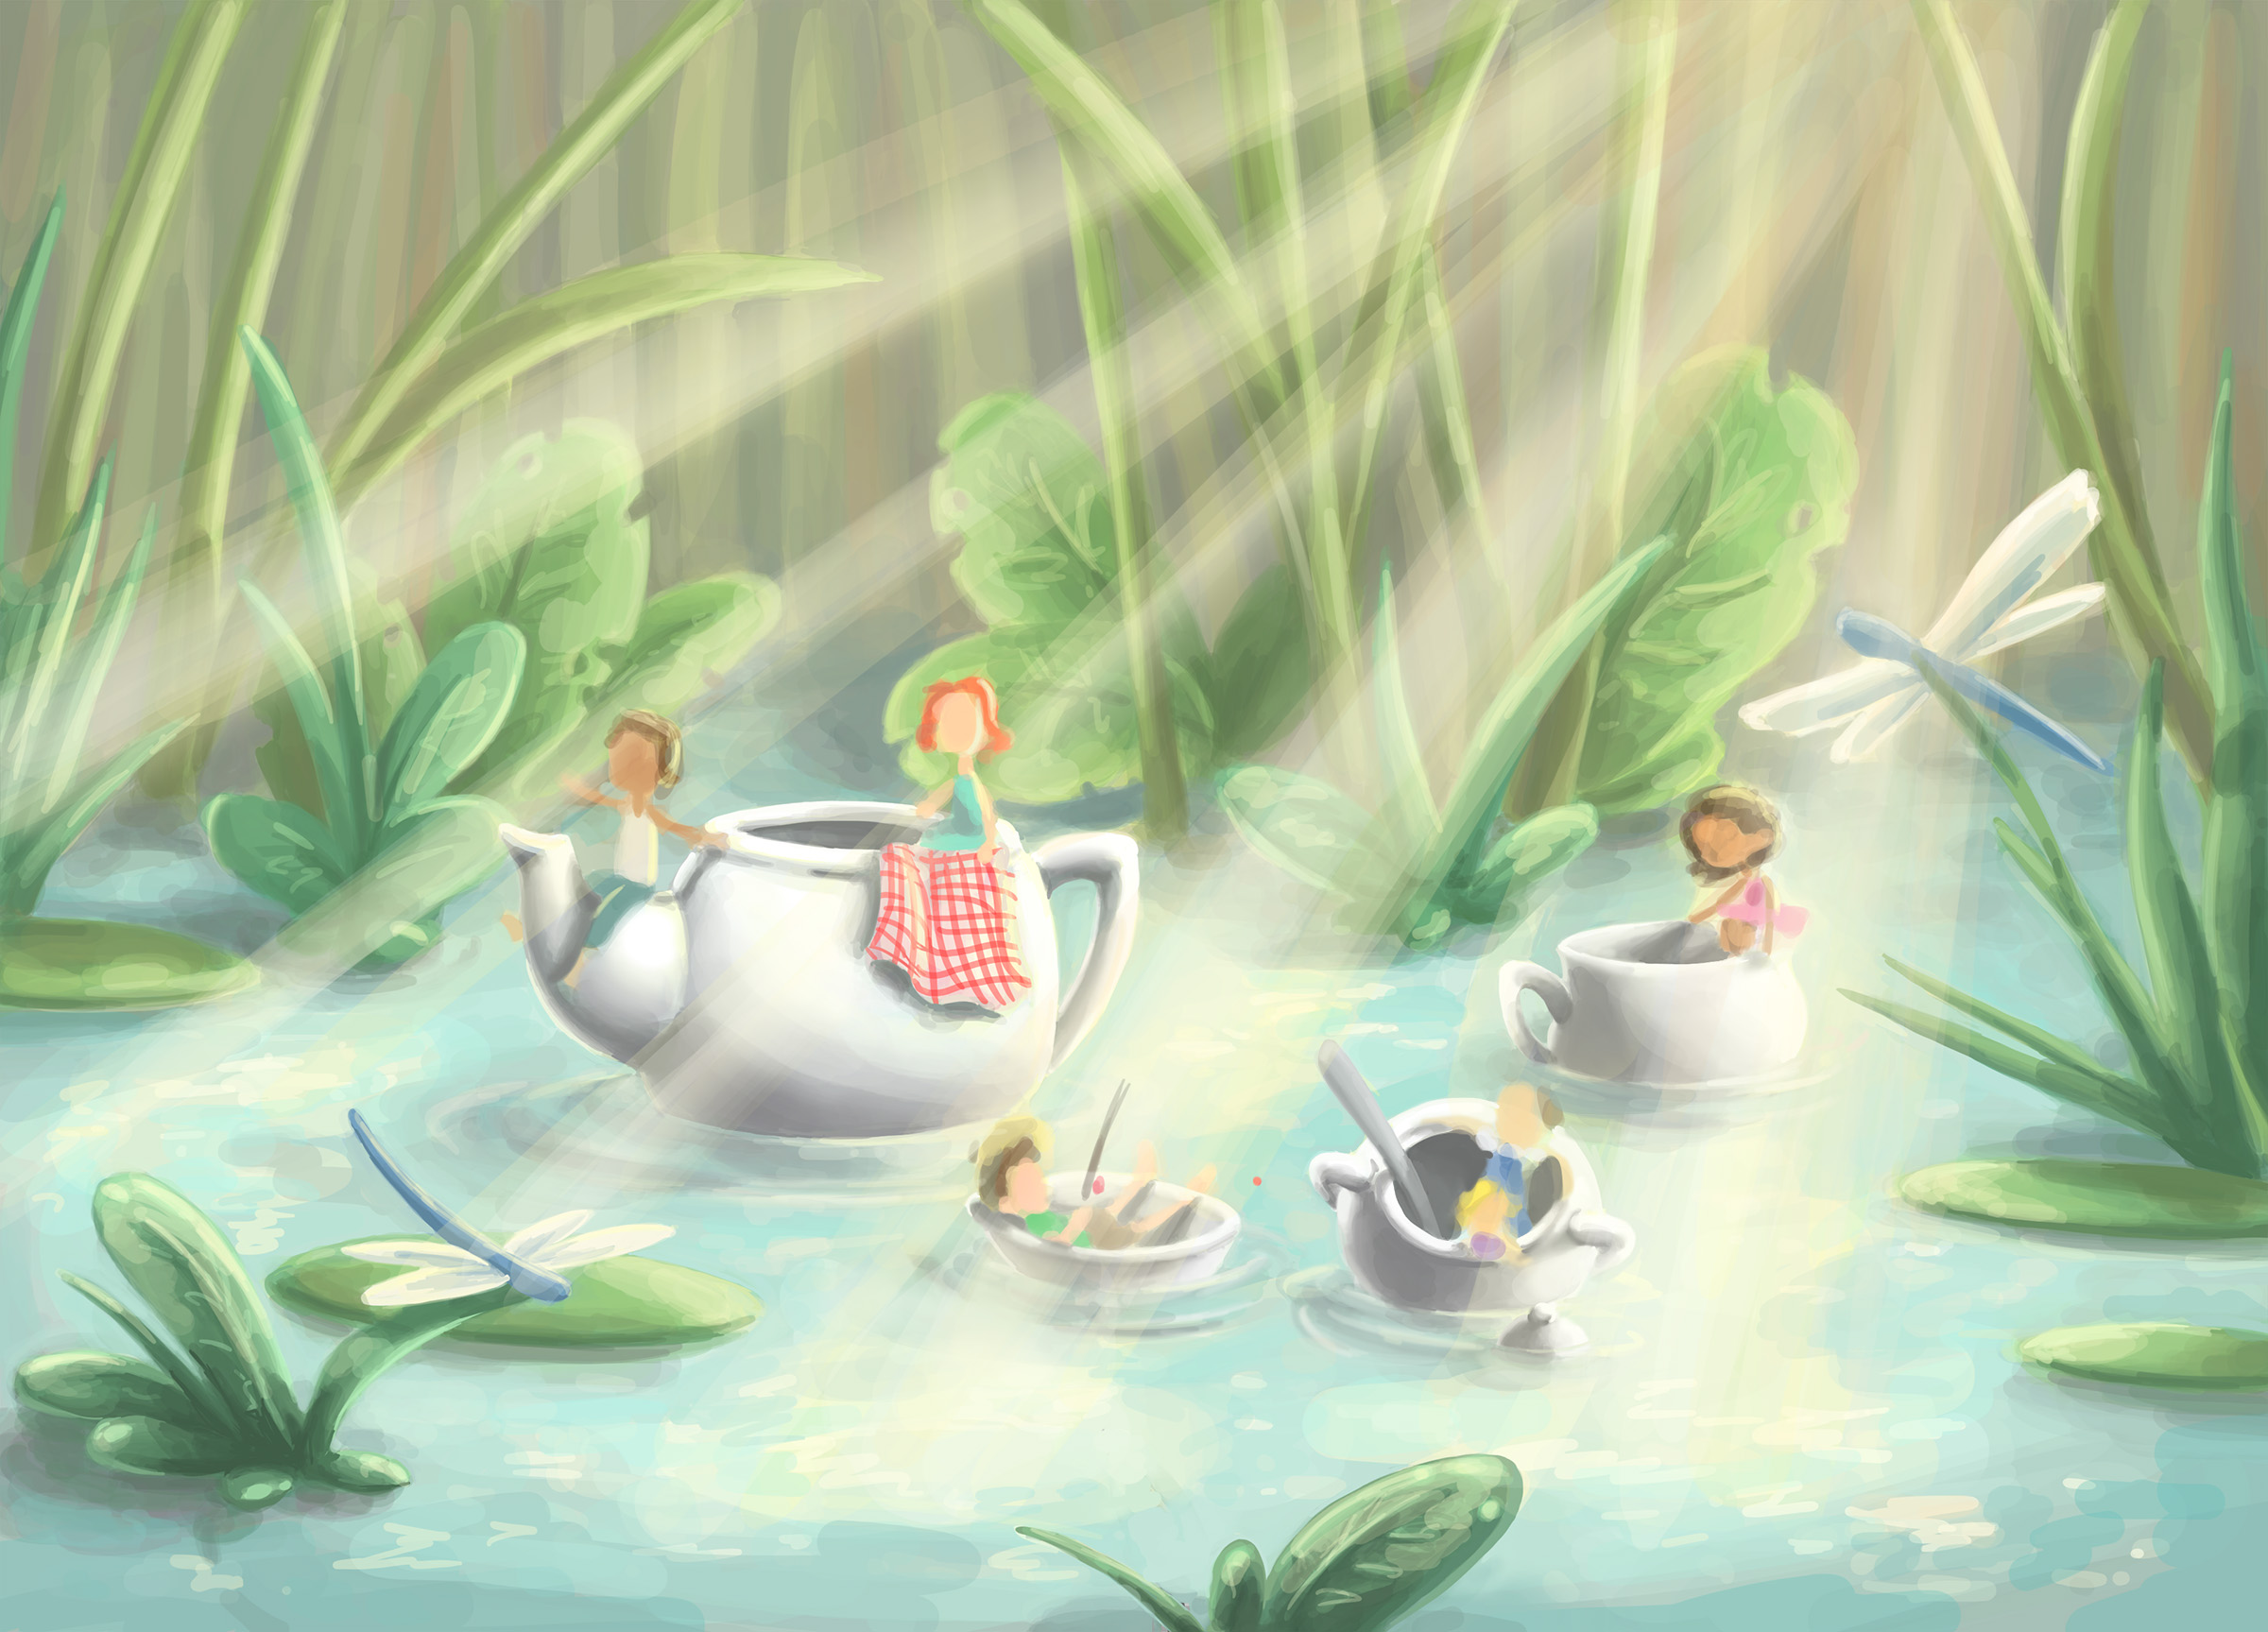 0_1472503973893_river teaparty 6.jpg